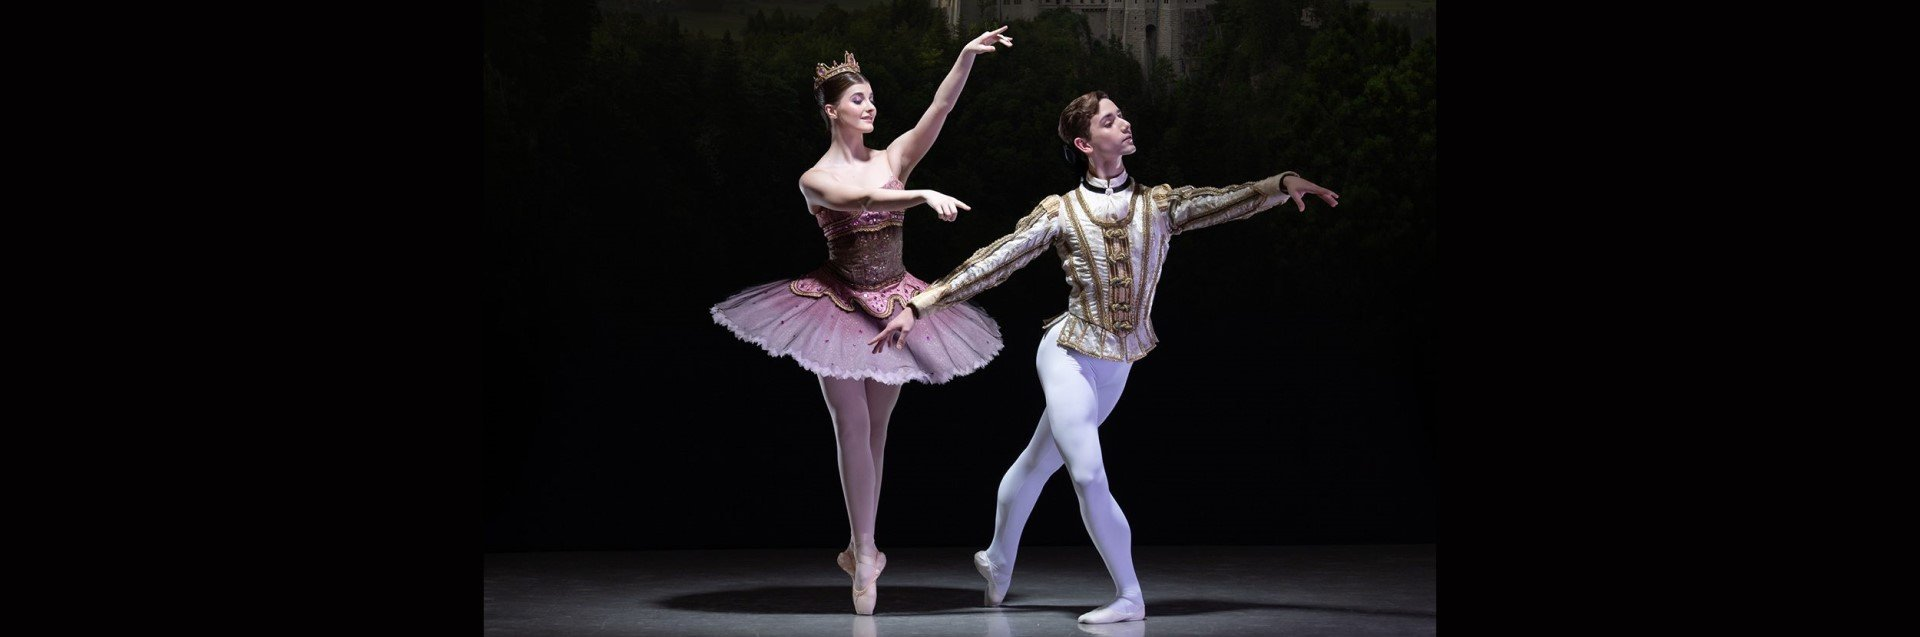 My First Ballet Sleeping Beauty at New Theatre Oxford